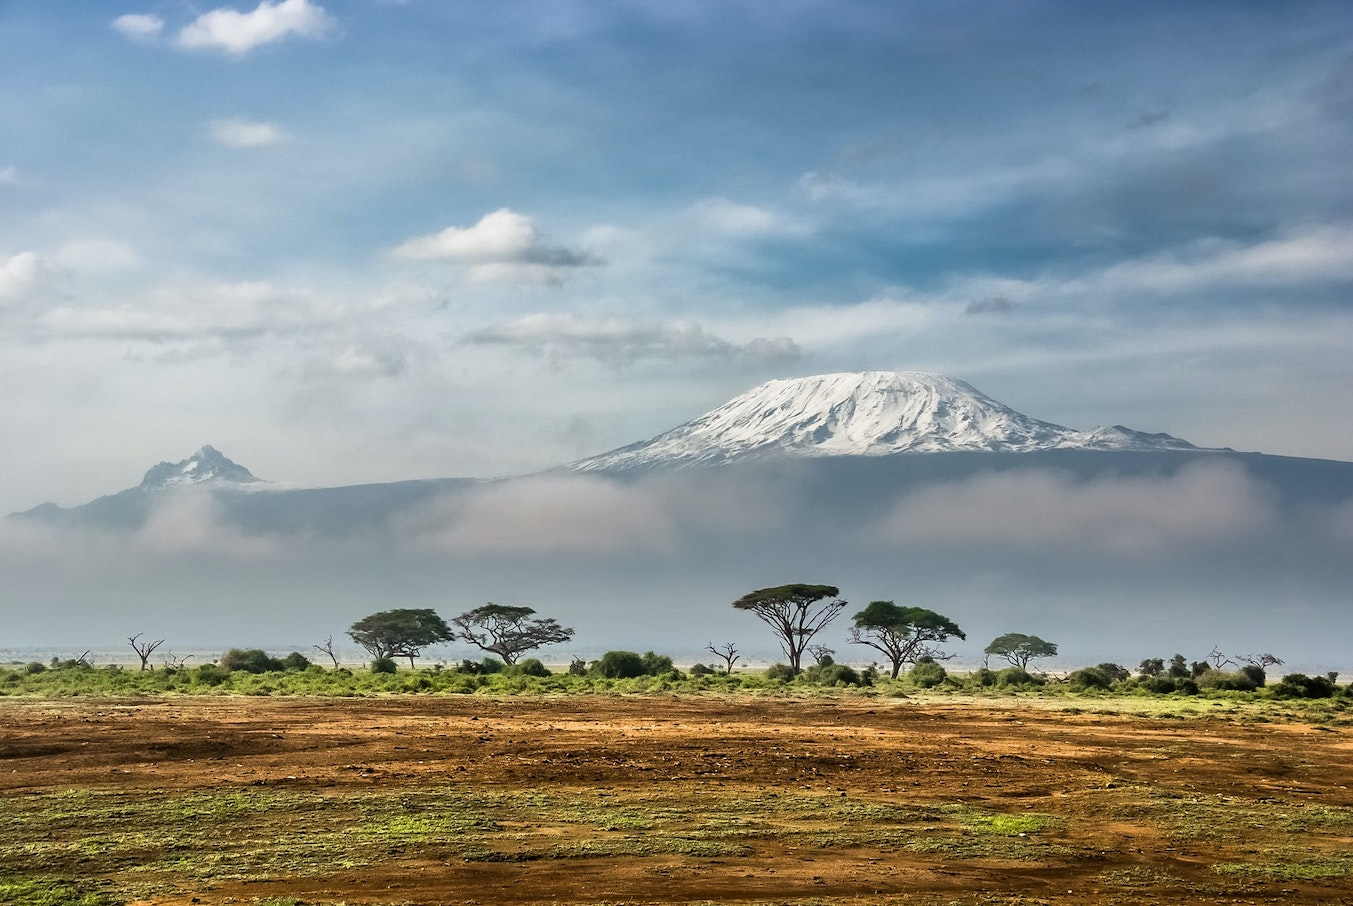 Mt Kilimanjaro Location - All You Need to Know Before Planning Your Trip